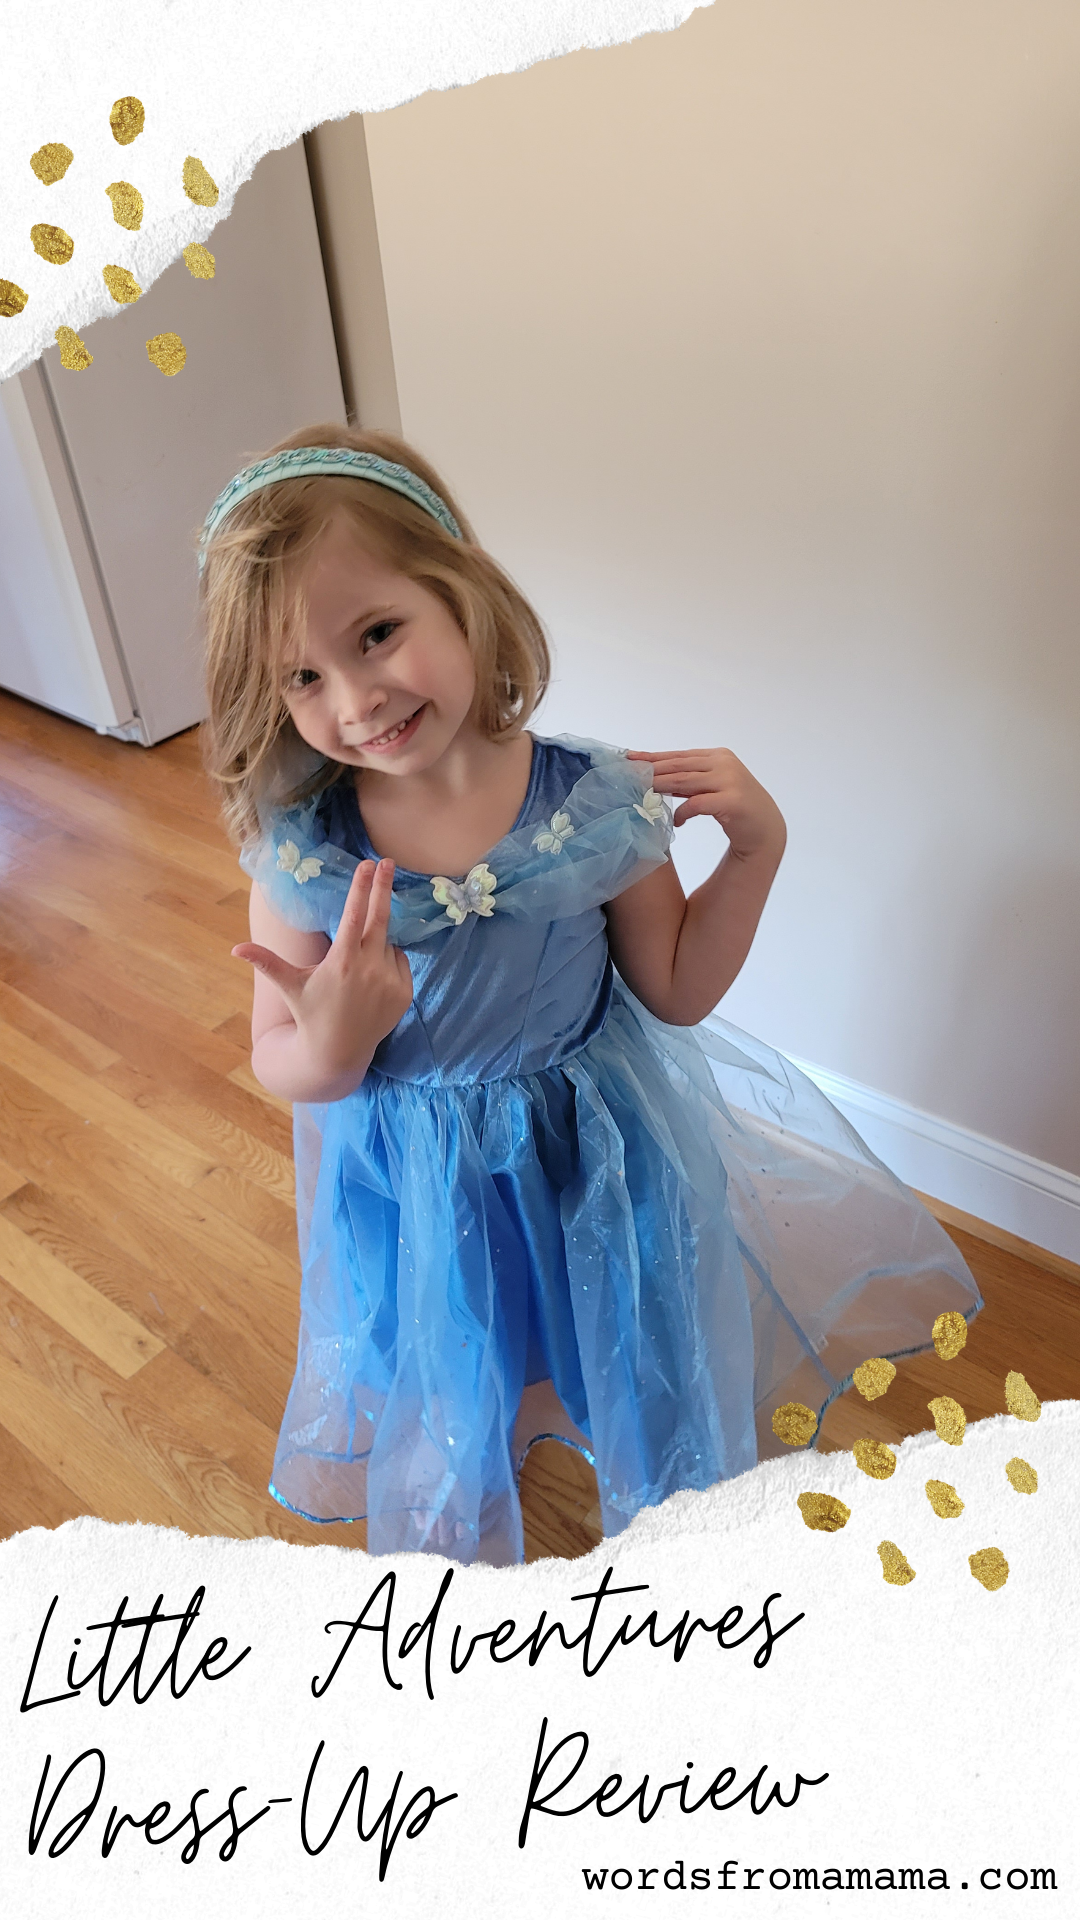 Little Adventures Princess Dress